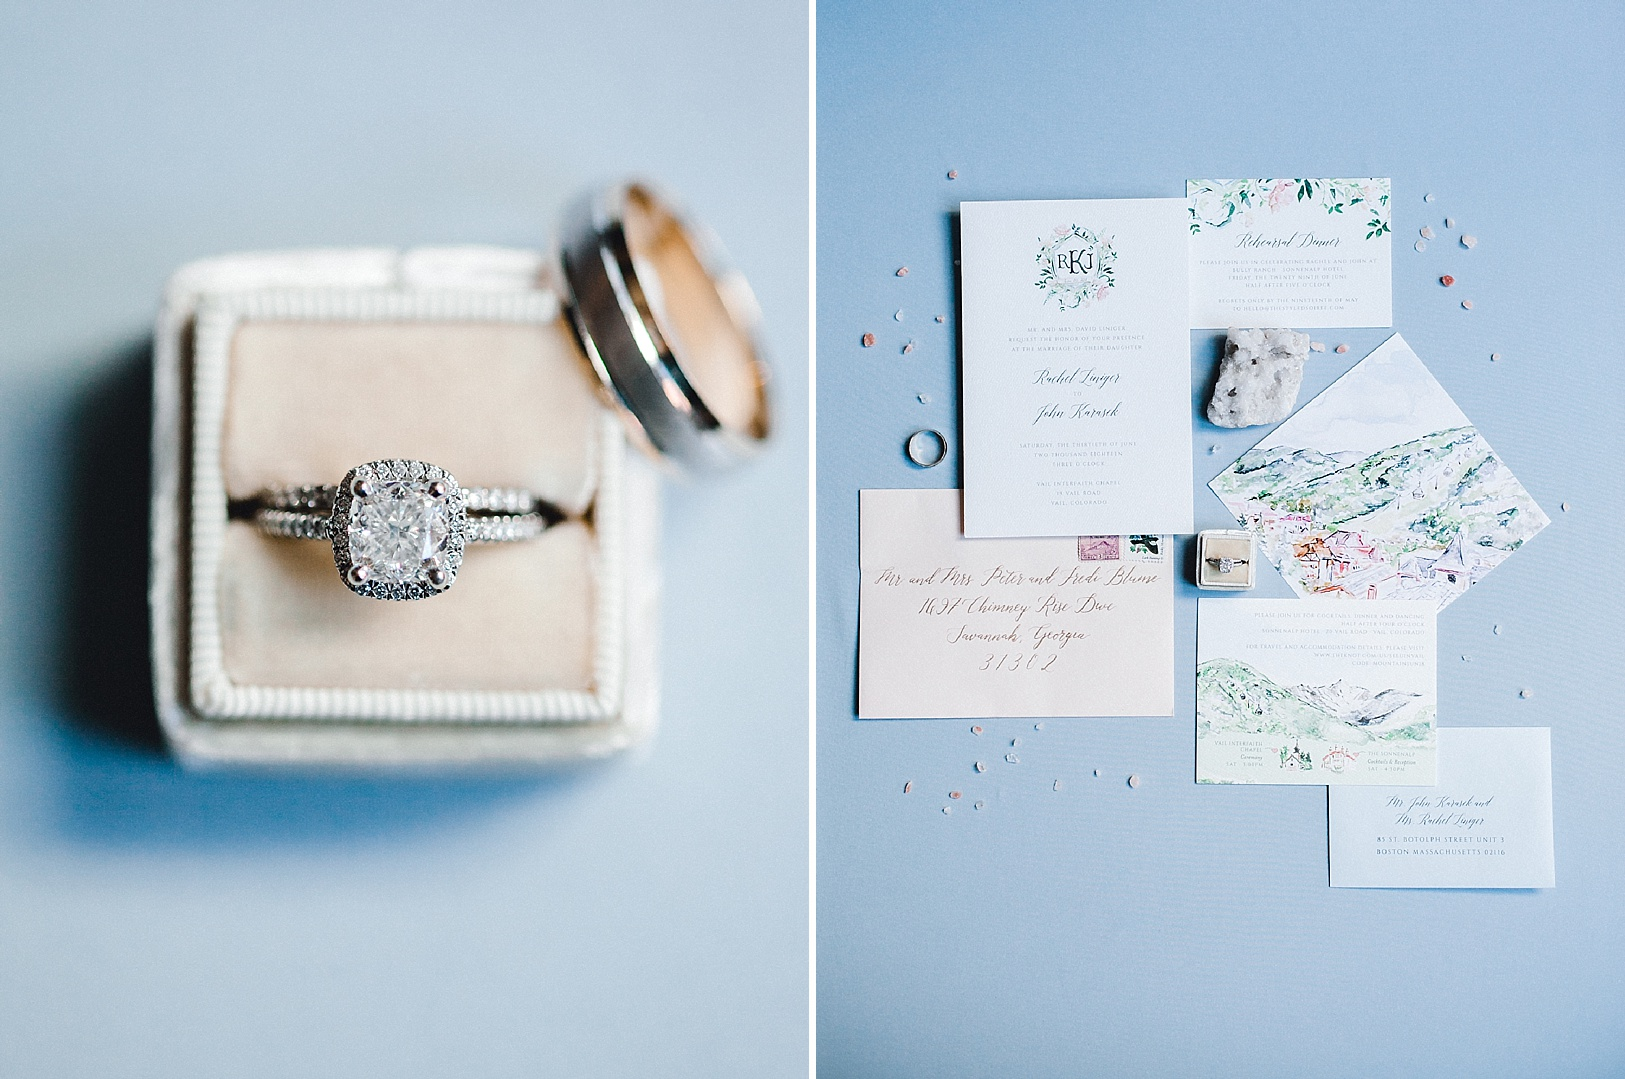 A velvet ring box and watercolor invitation suite on a blue styling board